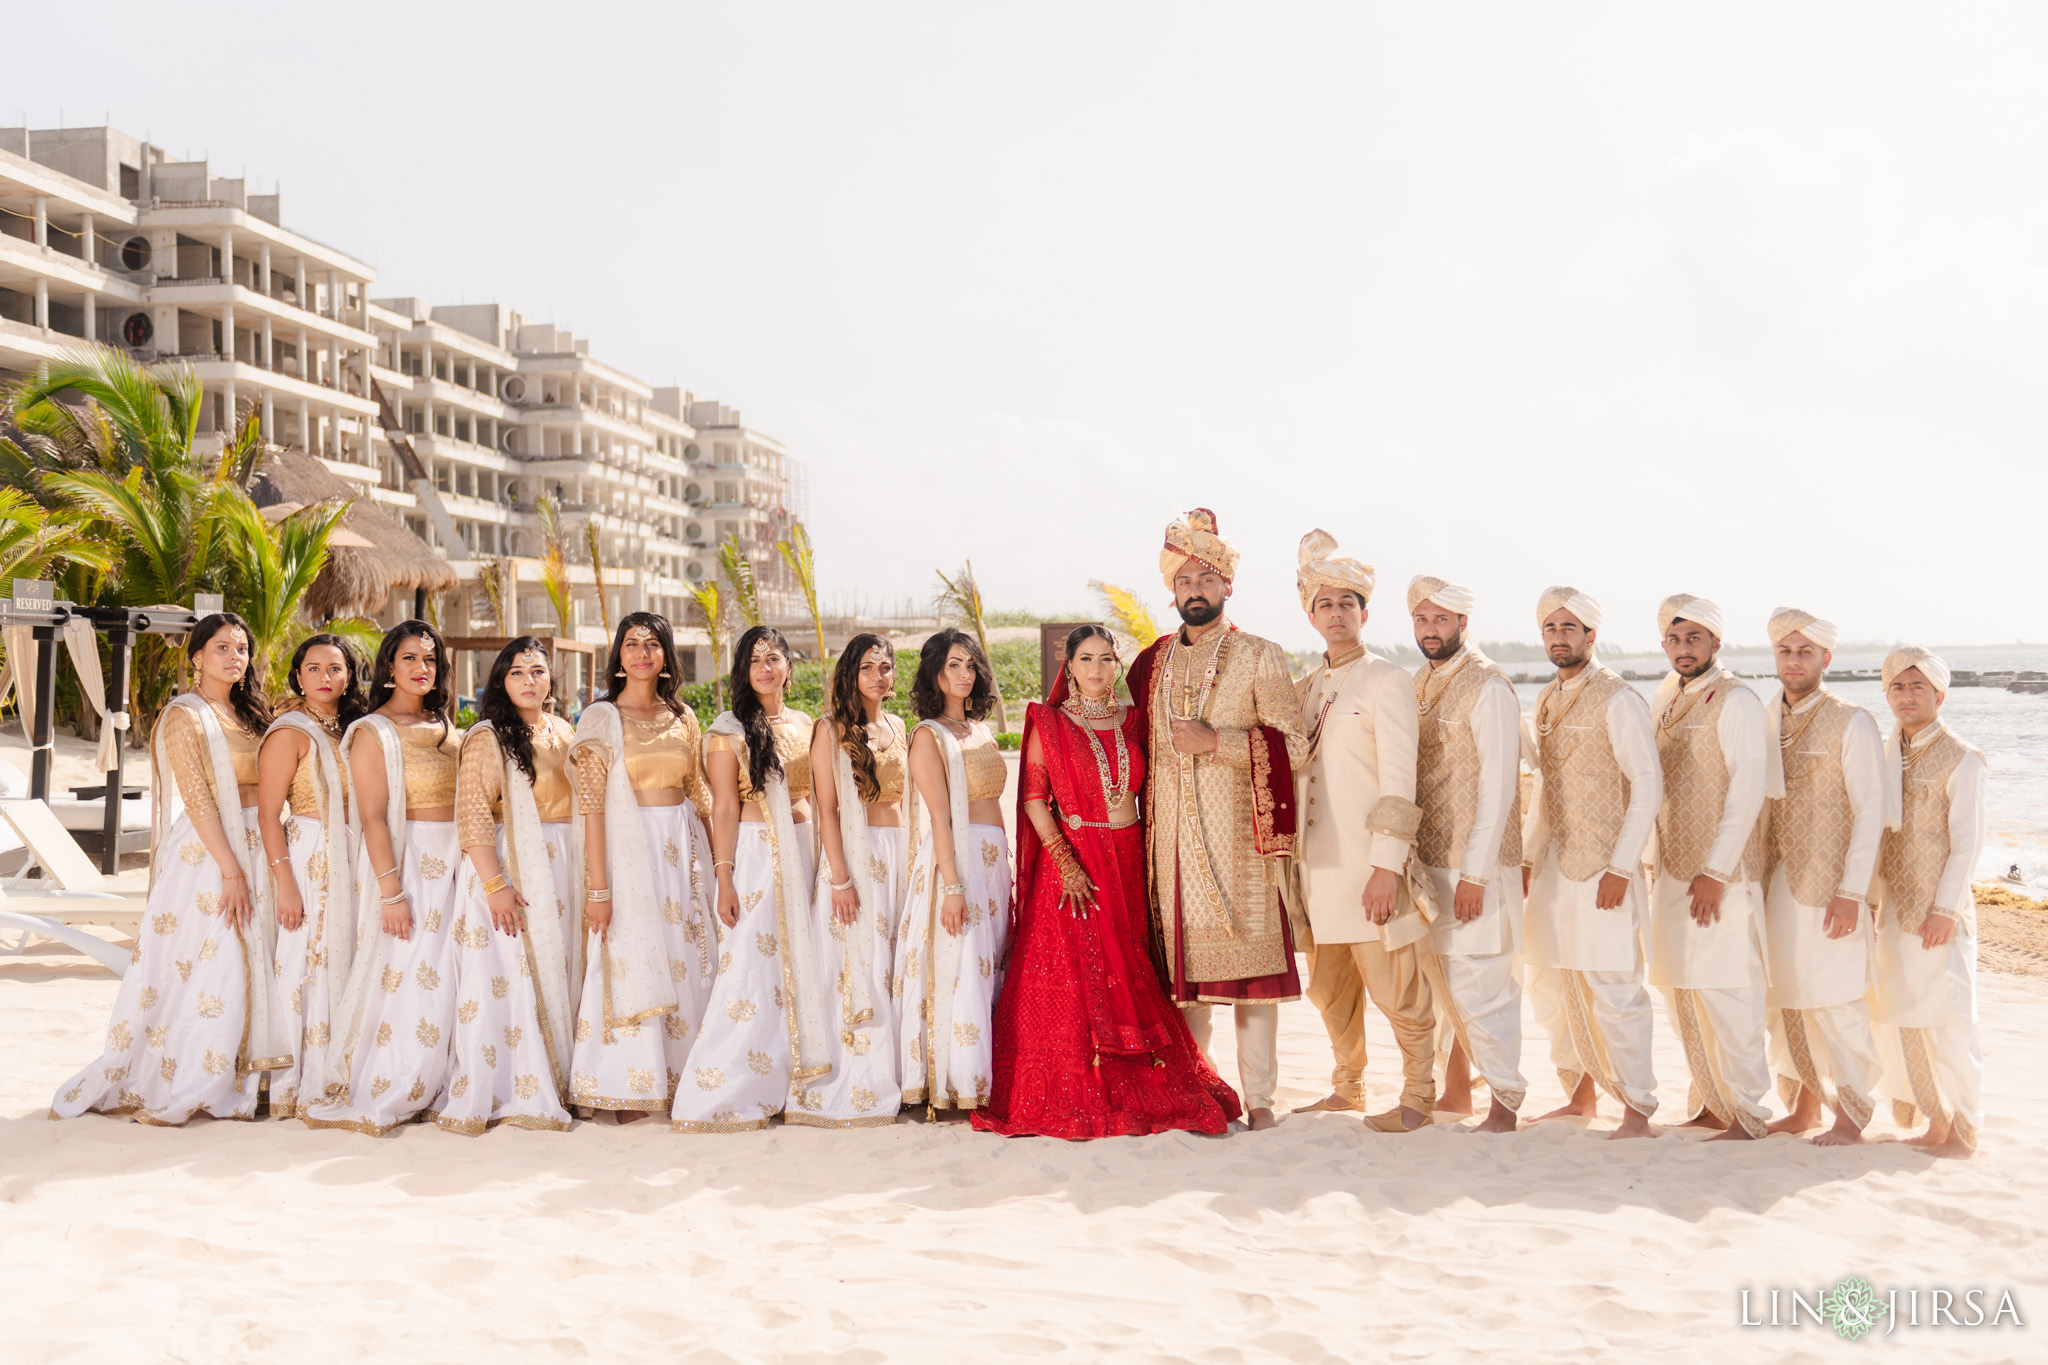 19 Generations El Dorado Royale Cancun Mexico Indian Wedding Party Photography